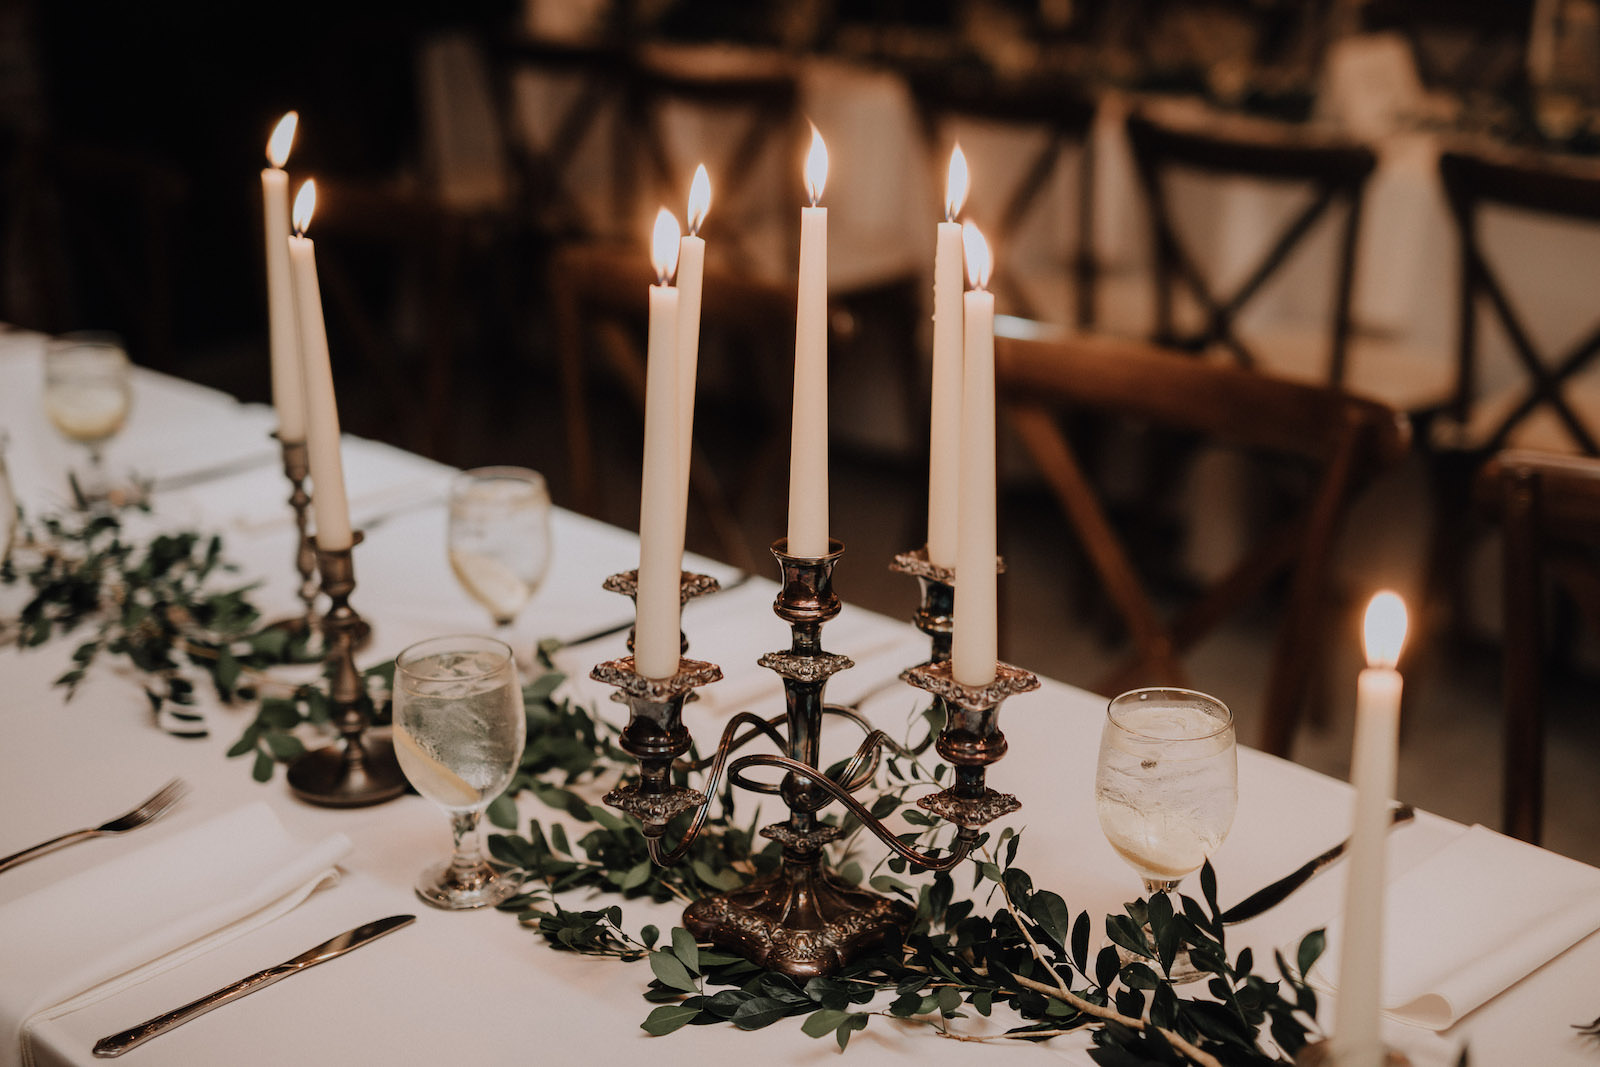 Rustic Boho Wedding Reception Feasting Tables with Gold Candle Centerpieces, Greenery Garland | St. Pete Wedding Florist Posies Flower Truck